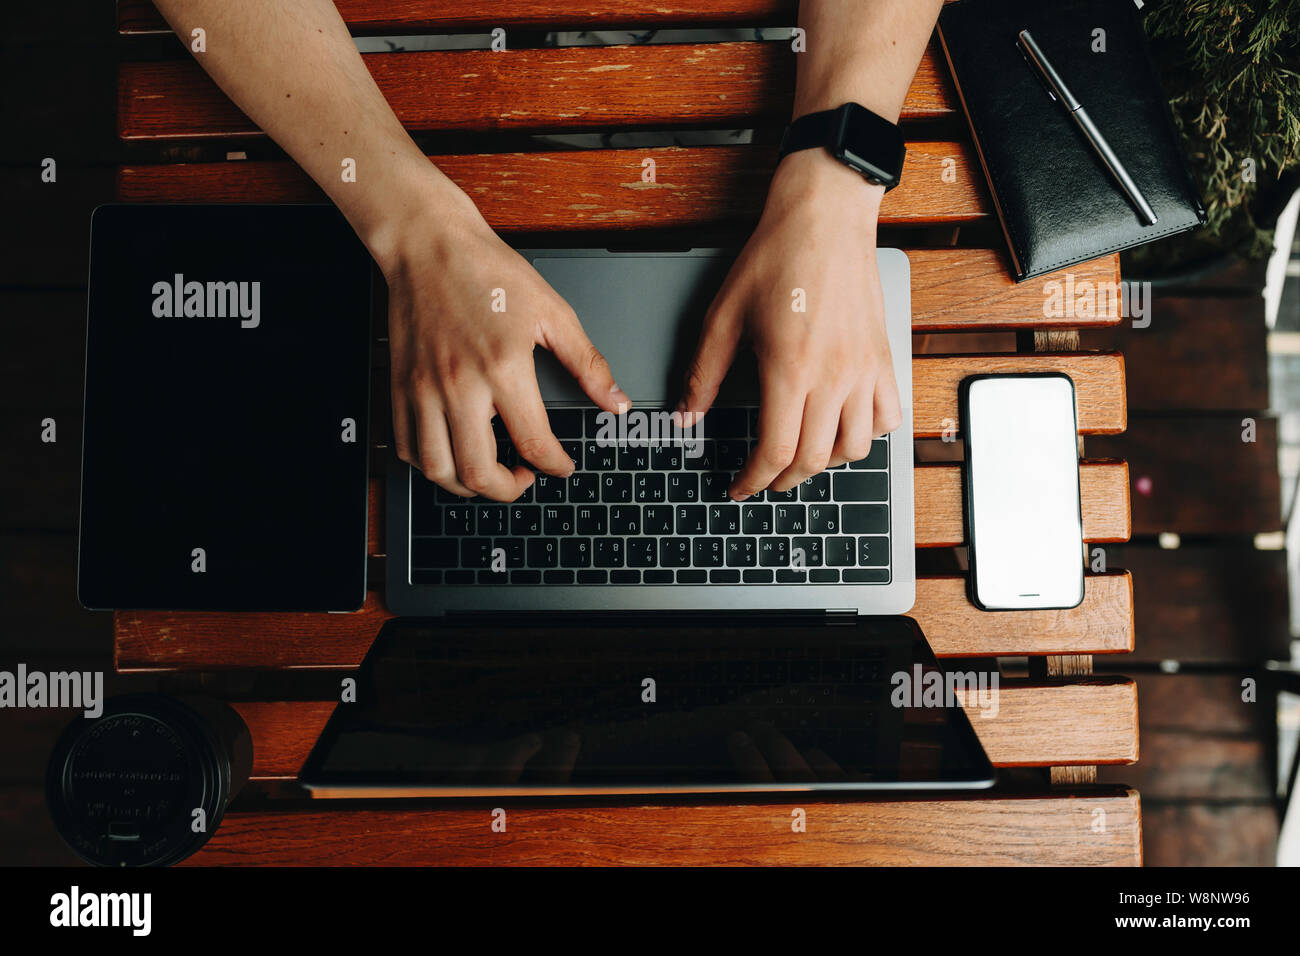 Crop view of male hands using laptop standing on wooden plank table with gadgets and notebook lying around from above Stock Photo